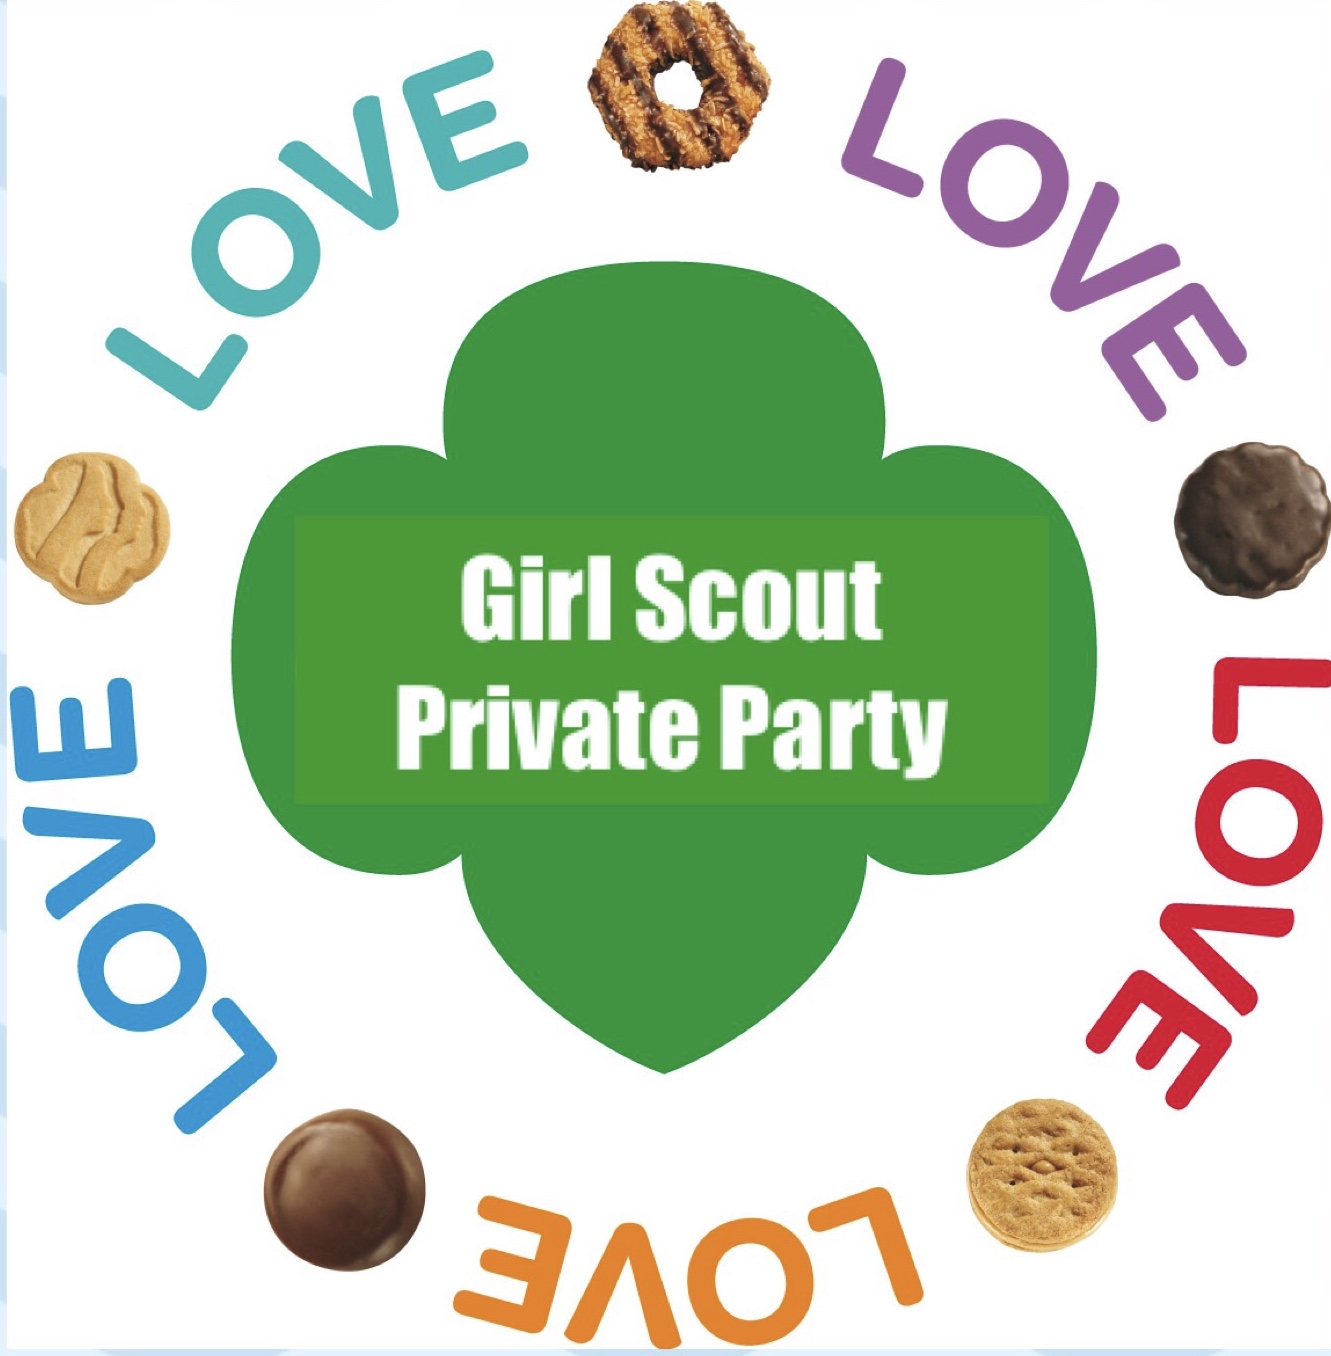 Girl Scout PRIVATE PARTY